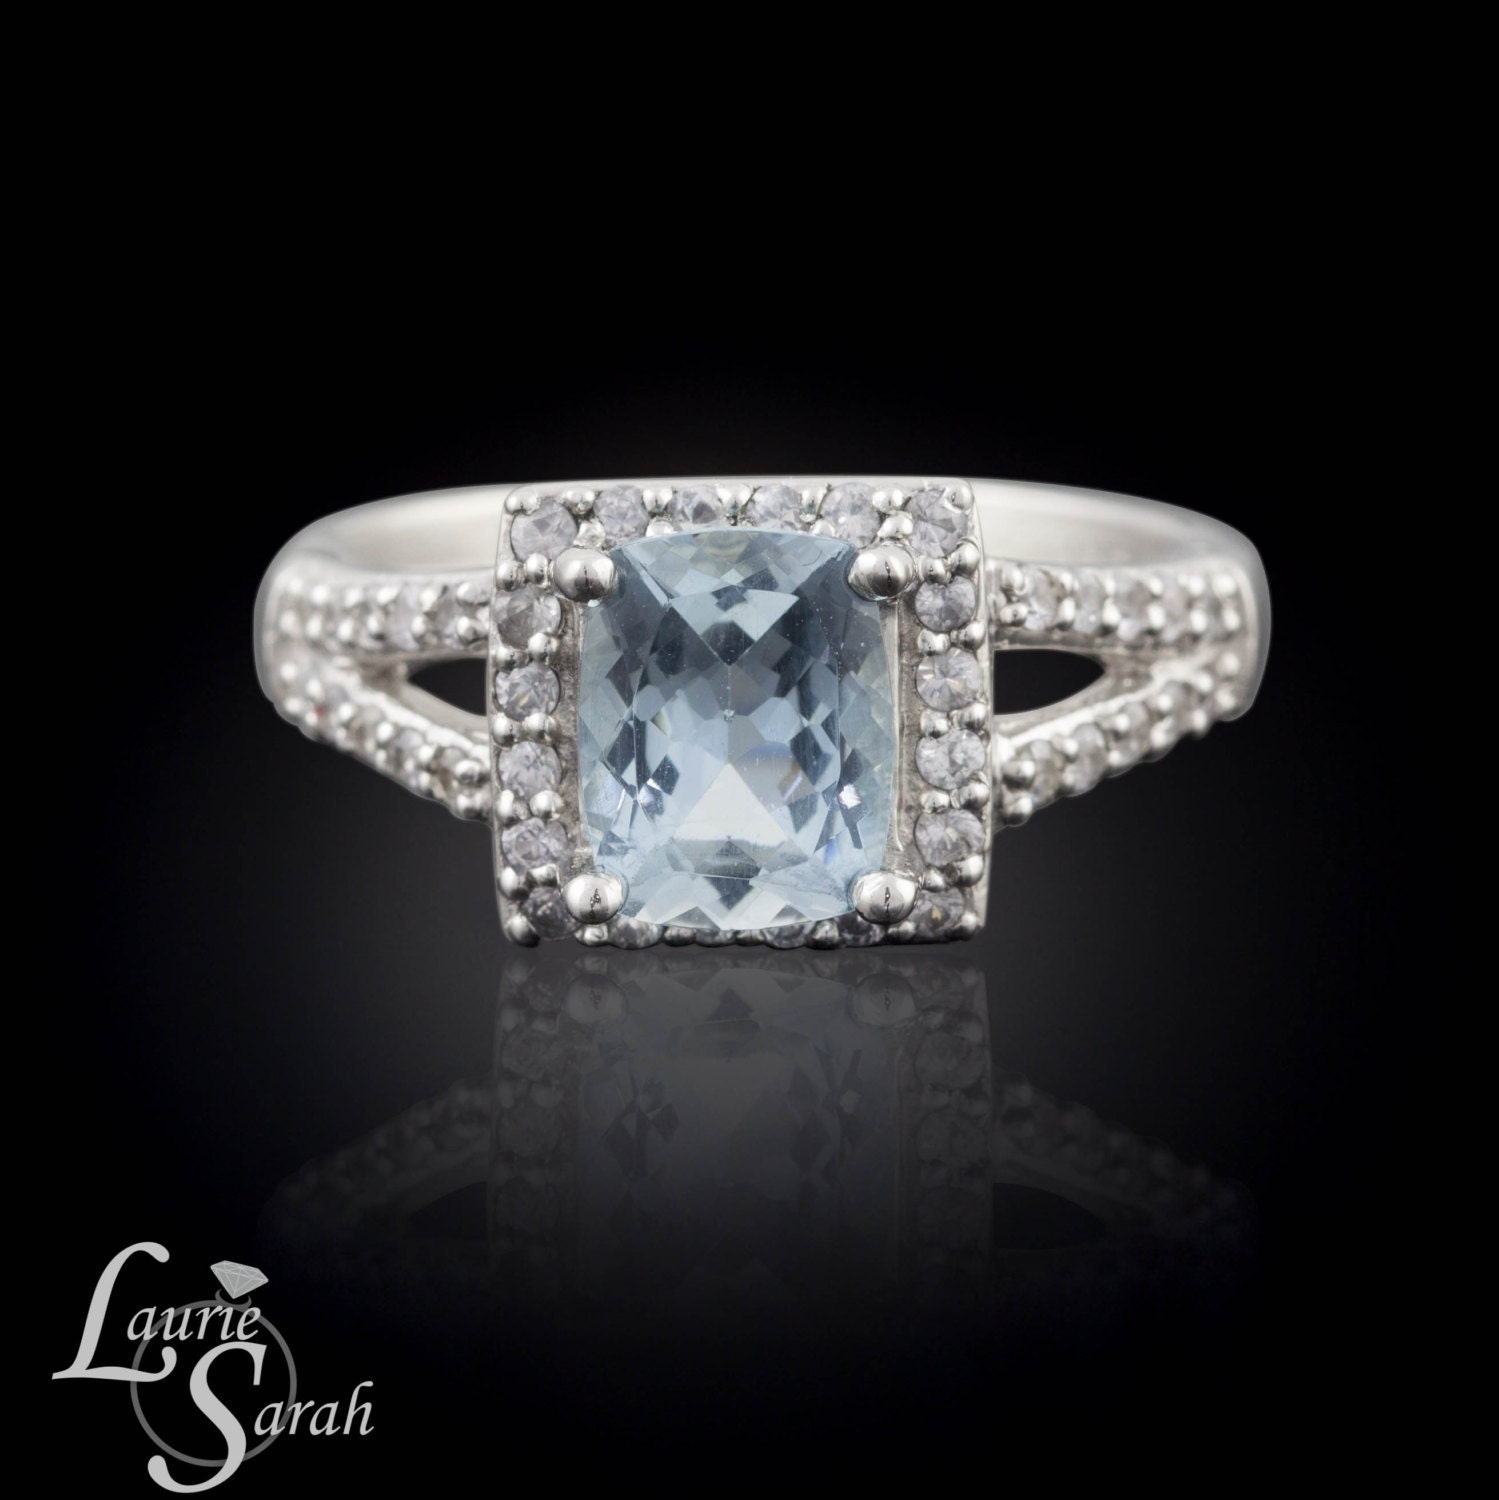 aquamarine engagement ring aquamarine ring diamond halo. Black Bedroom Furniture Sets. Home Design Ideas